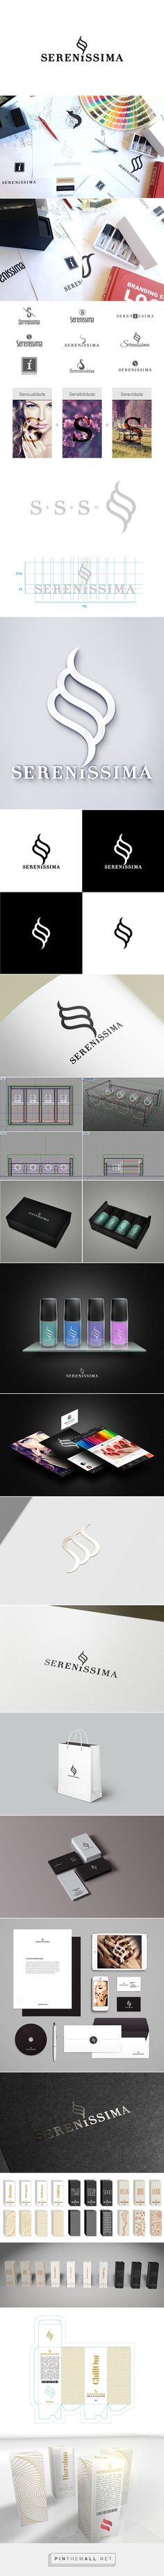 Sereníssima branding & #packaging on Behance by IndustriaHED™ Branding Studio curated by Packaging Diva PD long pin but worth it created via https://www.behance.net/industria